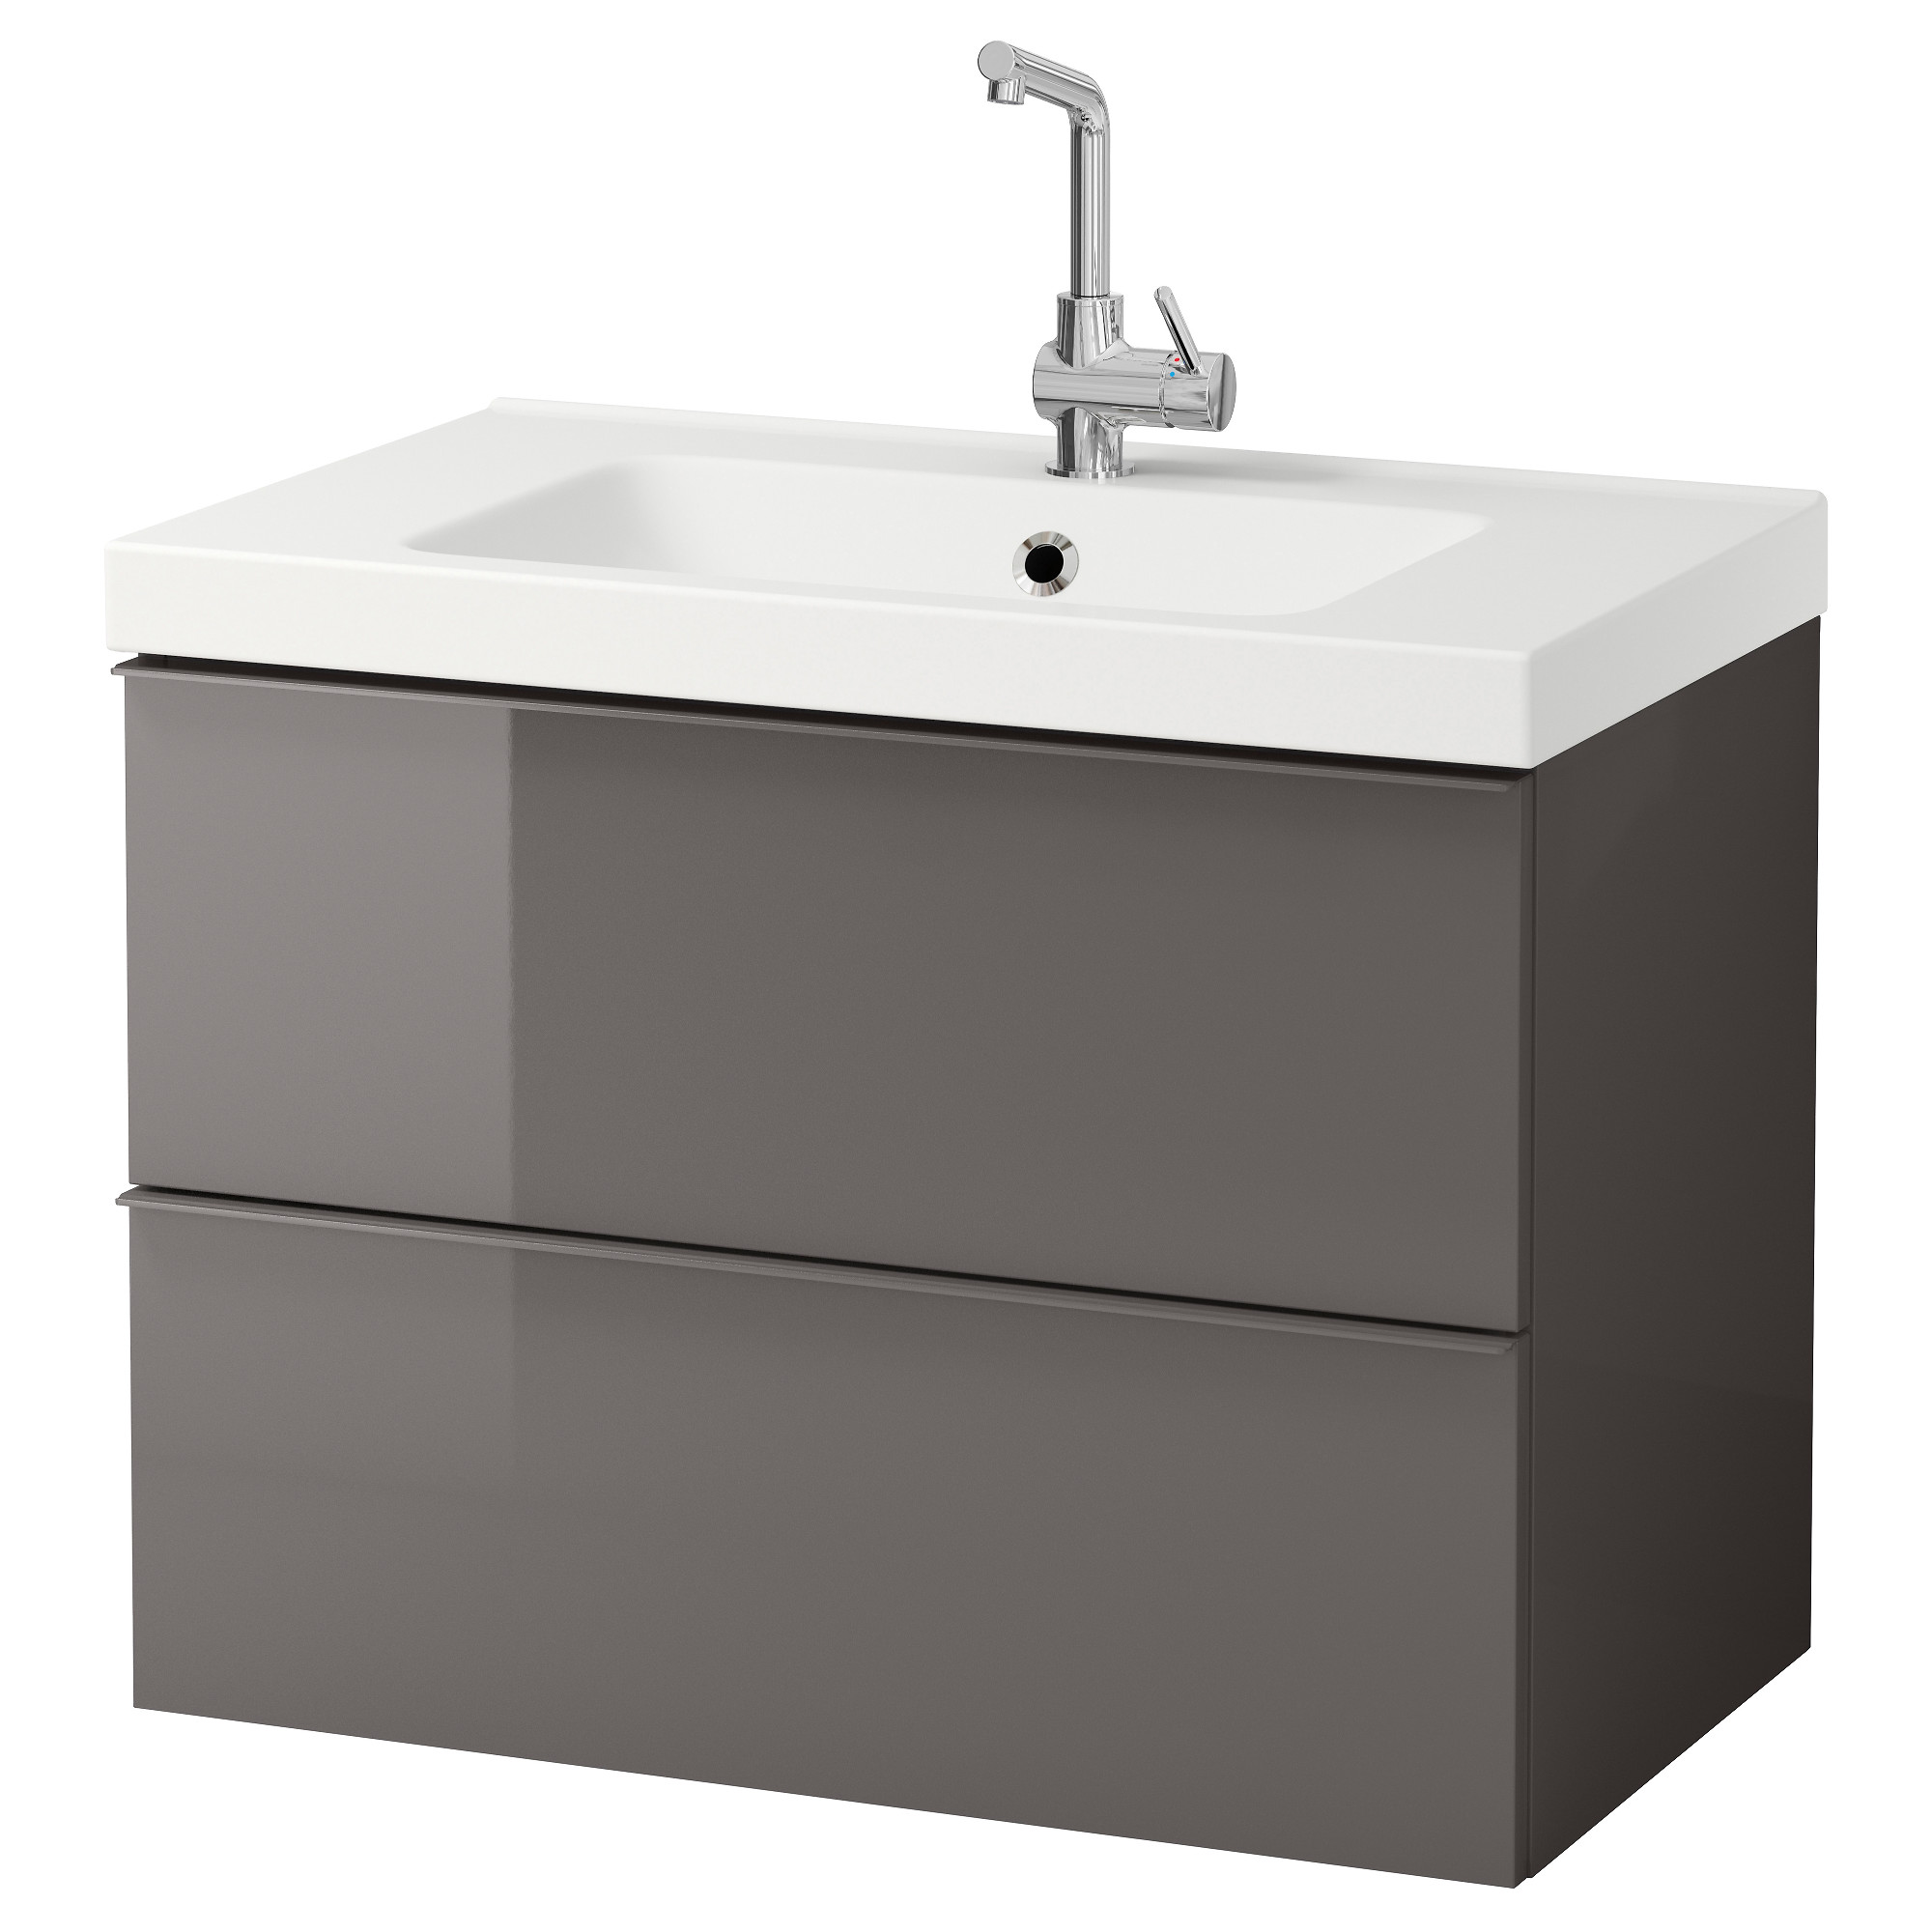 GODMORGON ODENSVIK Sink cabinet with 2